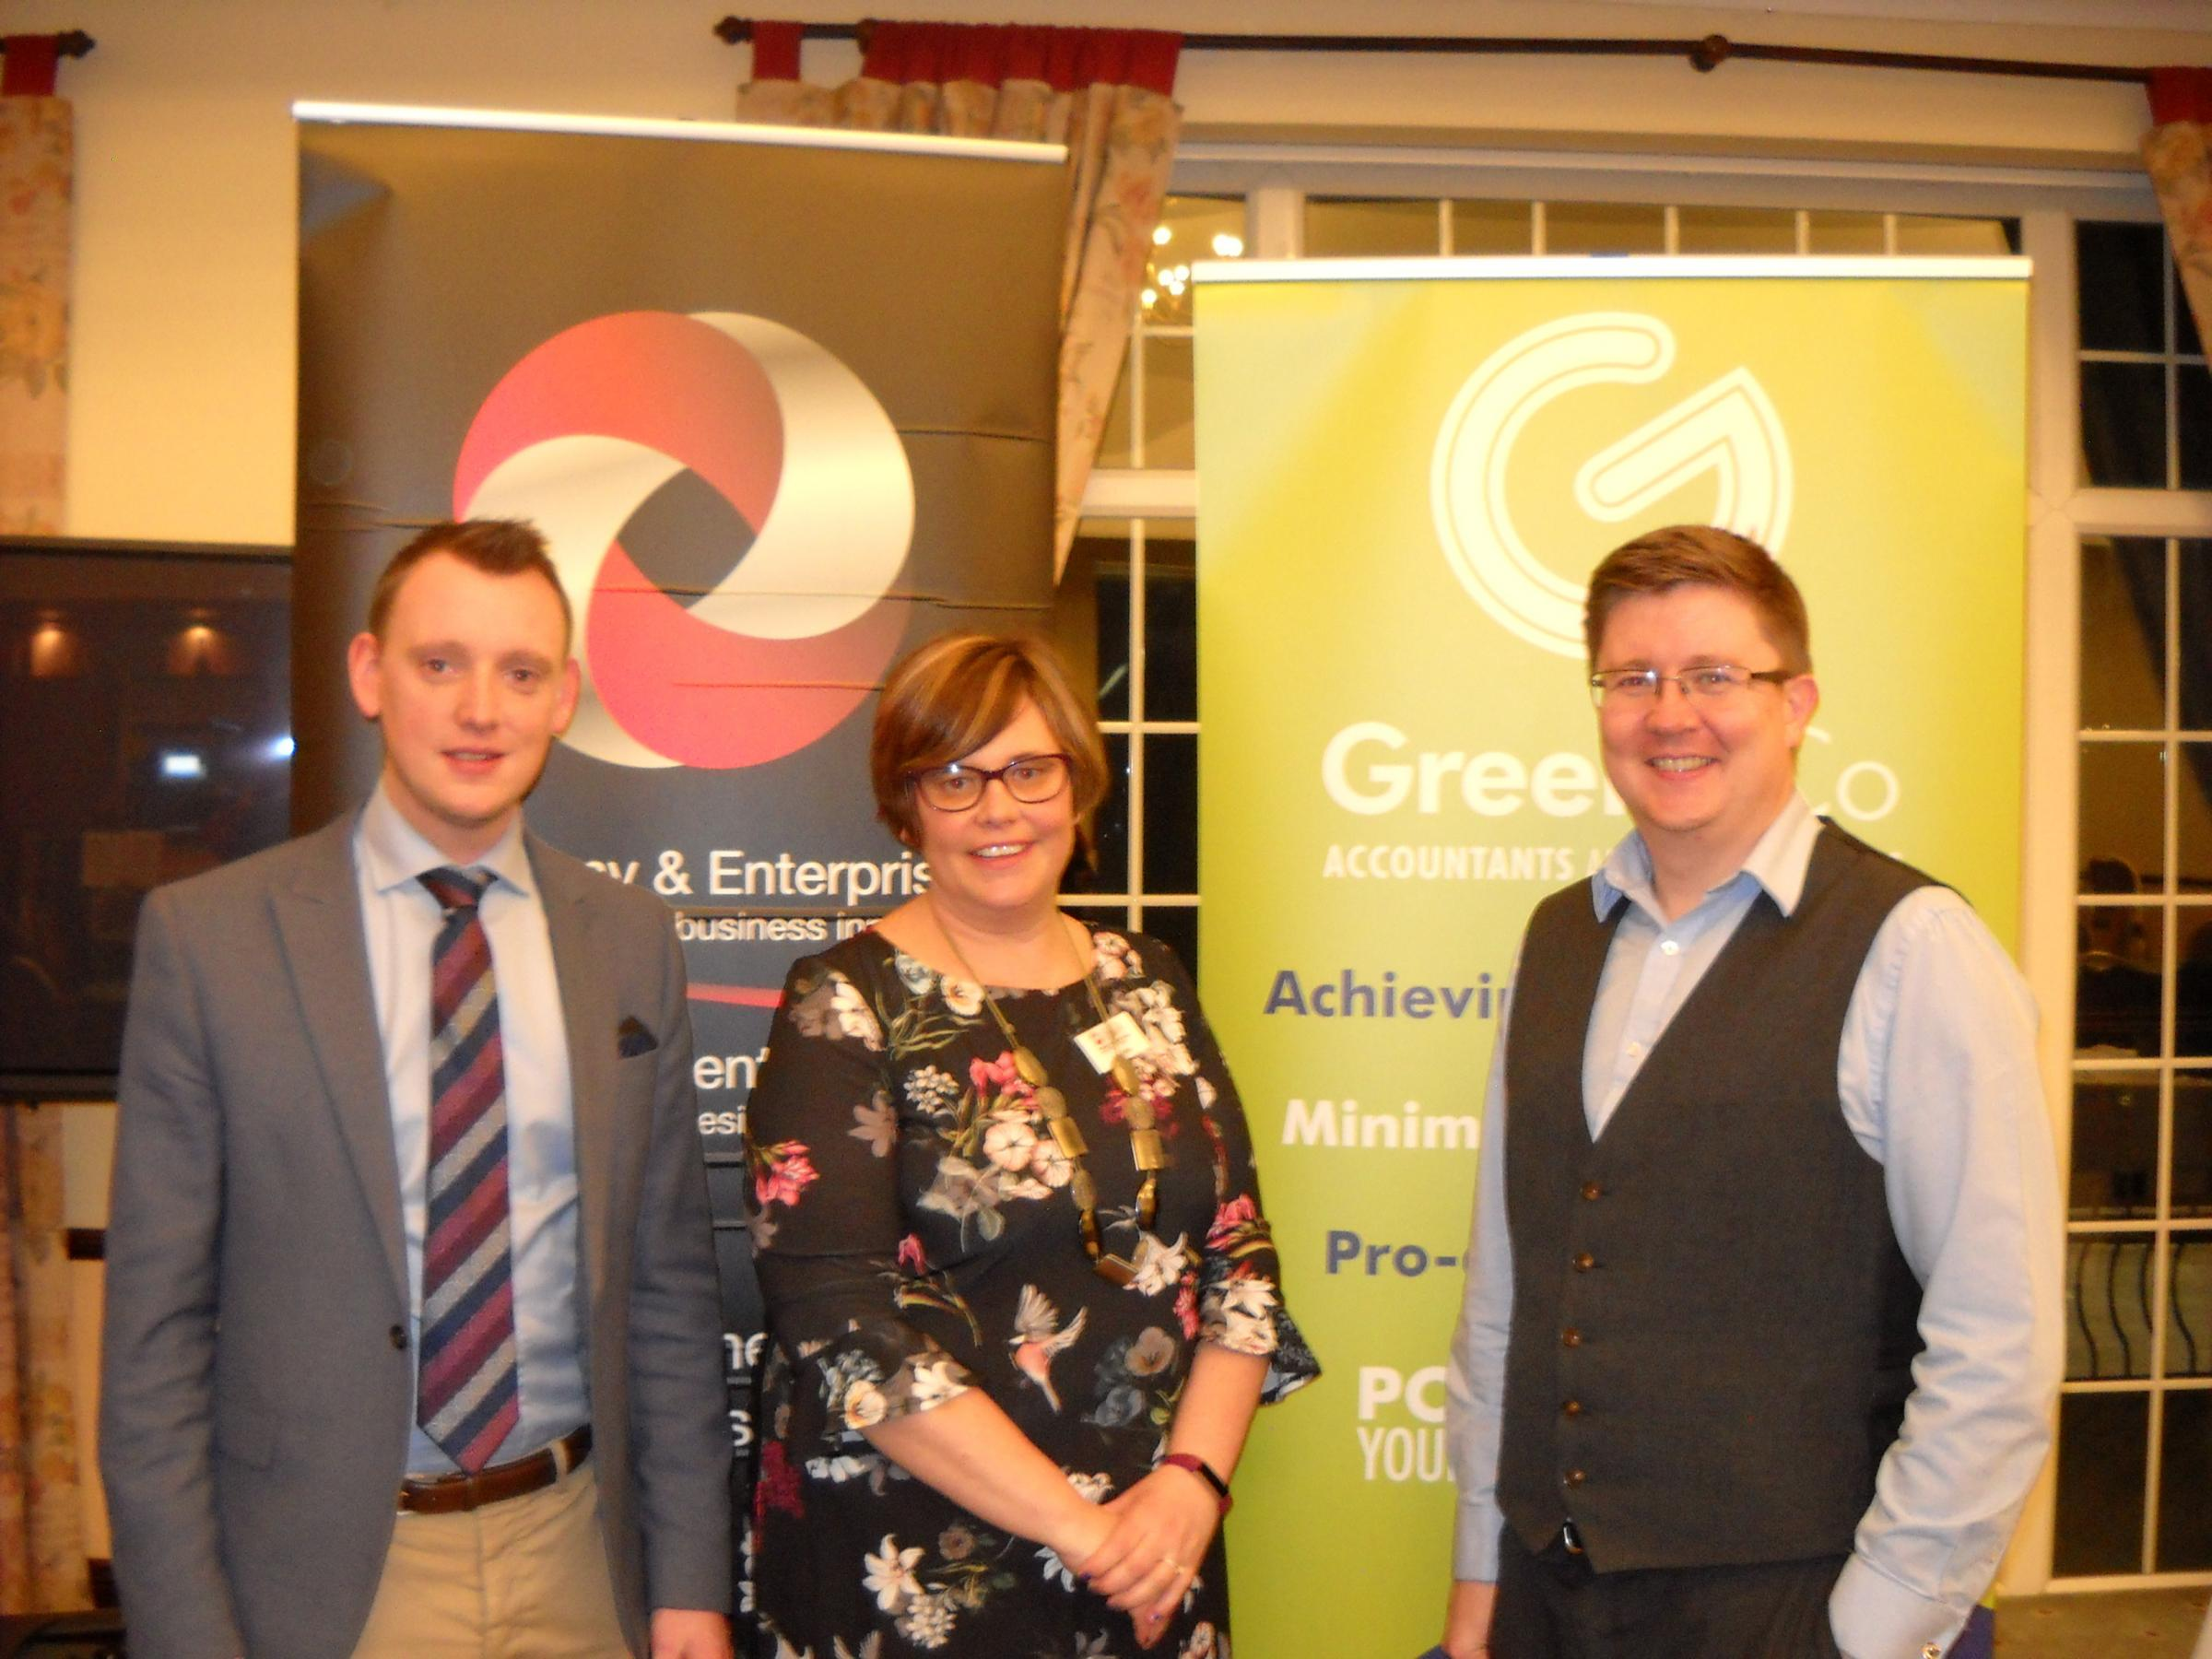 L to R: Andrew Evans, of Green & Co, Joanne John, of Torfaen Economy & Enterprise, Barrie Kenyon, of Green & Co